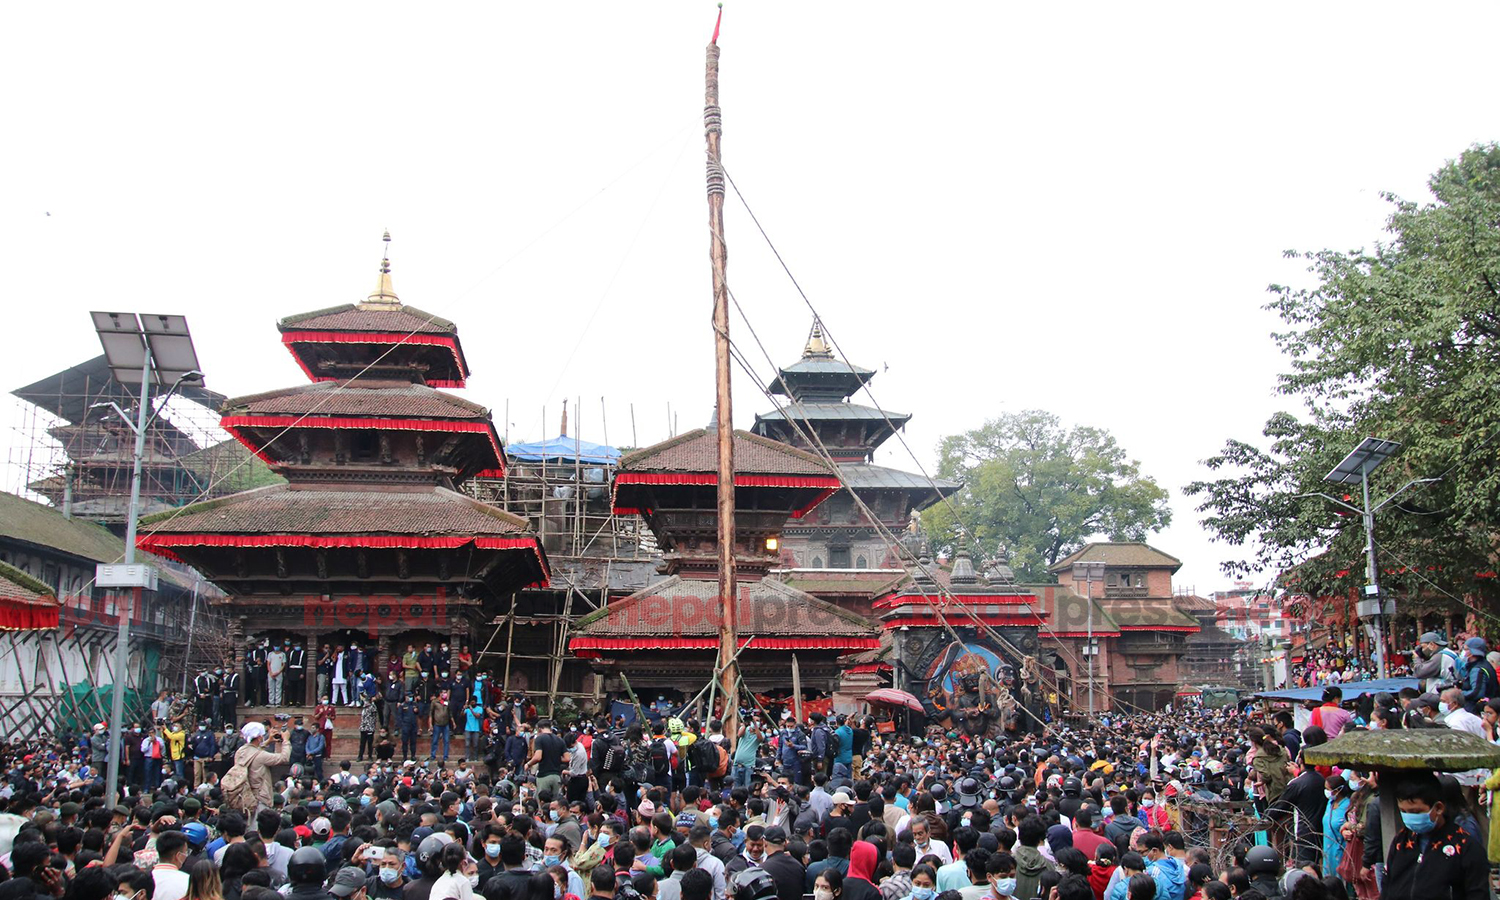 Indra Jatra festival formally begins today with erection of lingo (With photos)